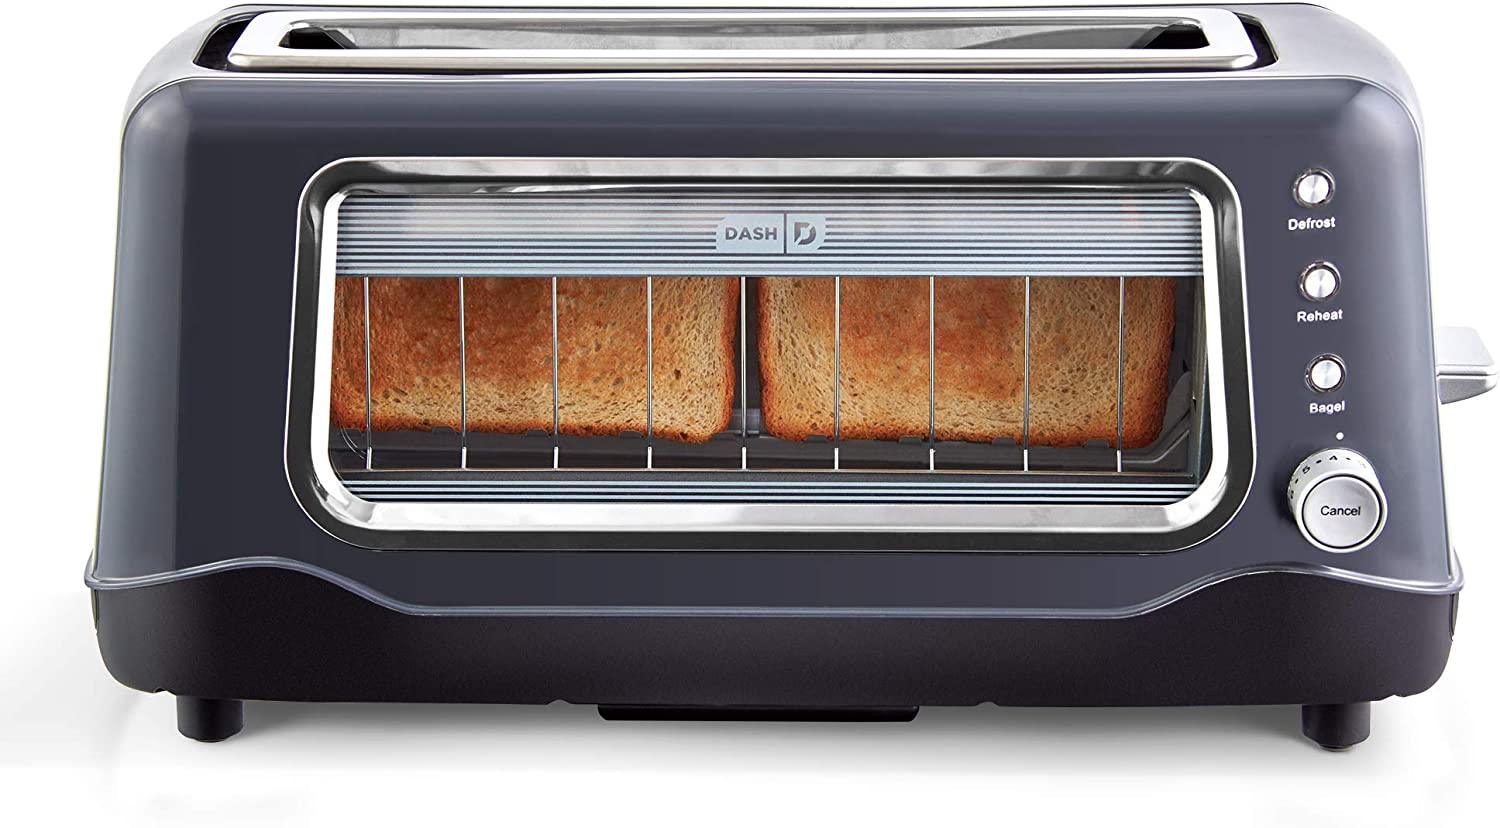 Dash Clear View Toaster (Renewed)